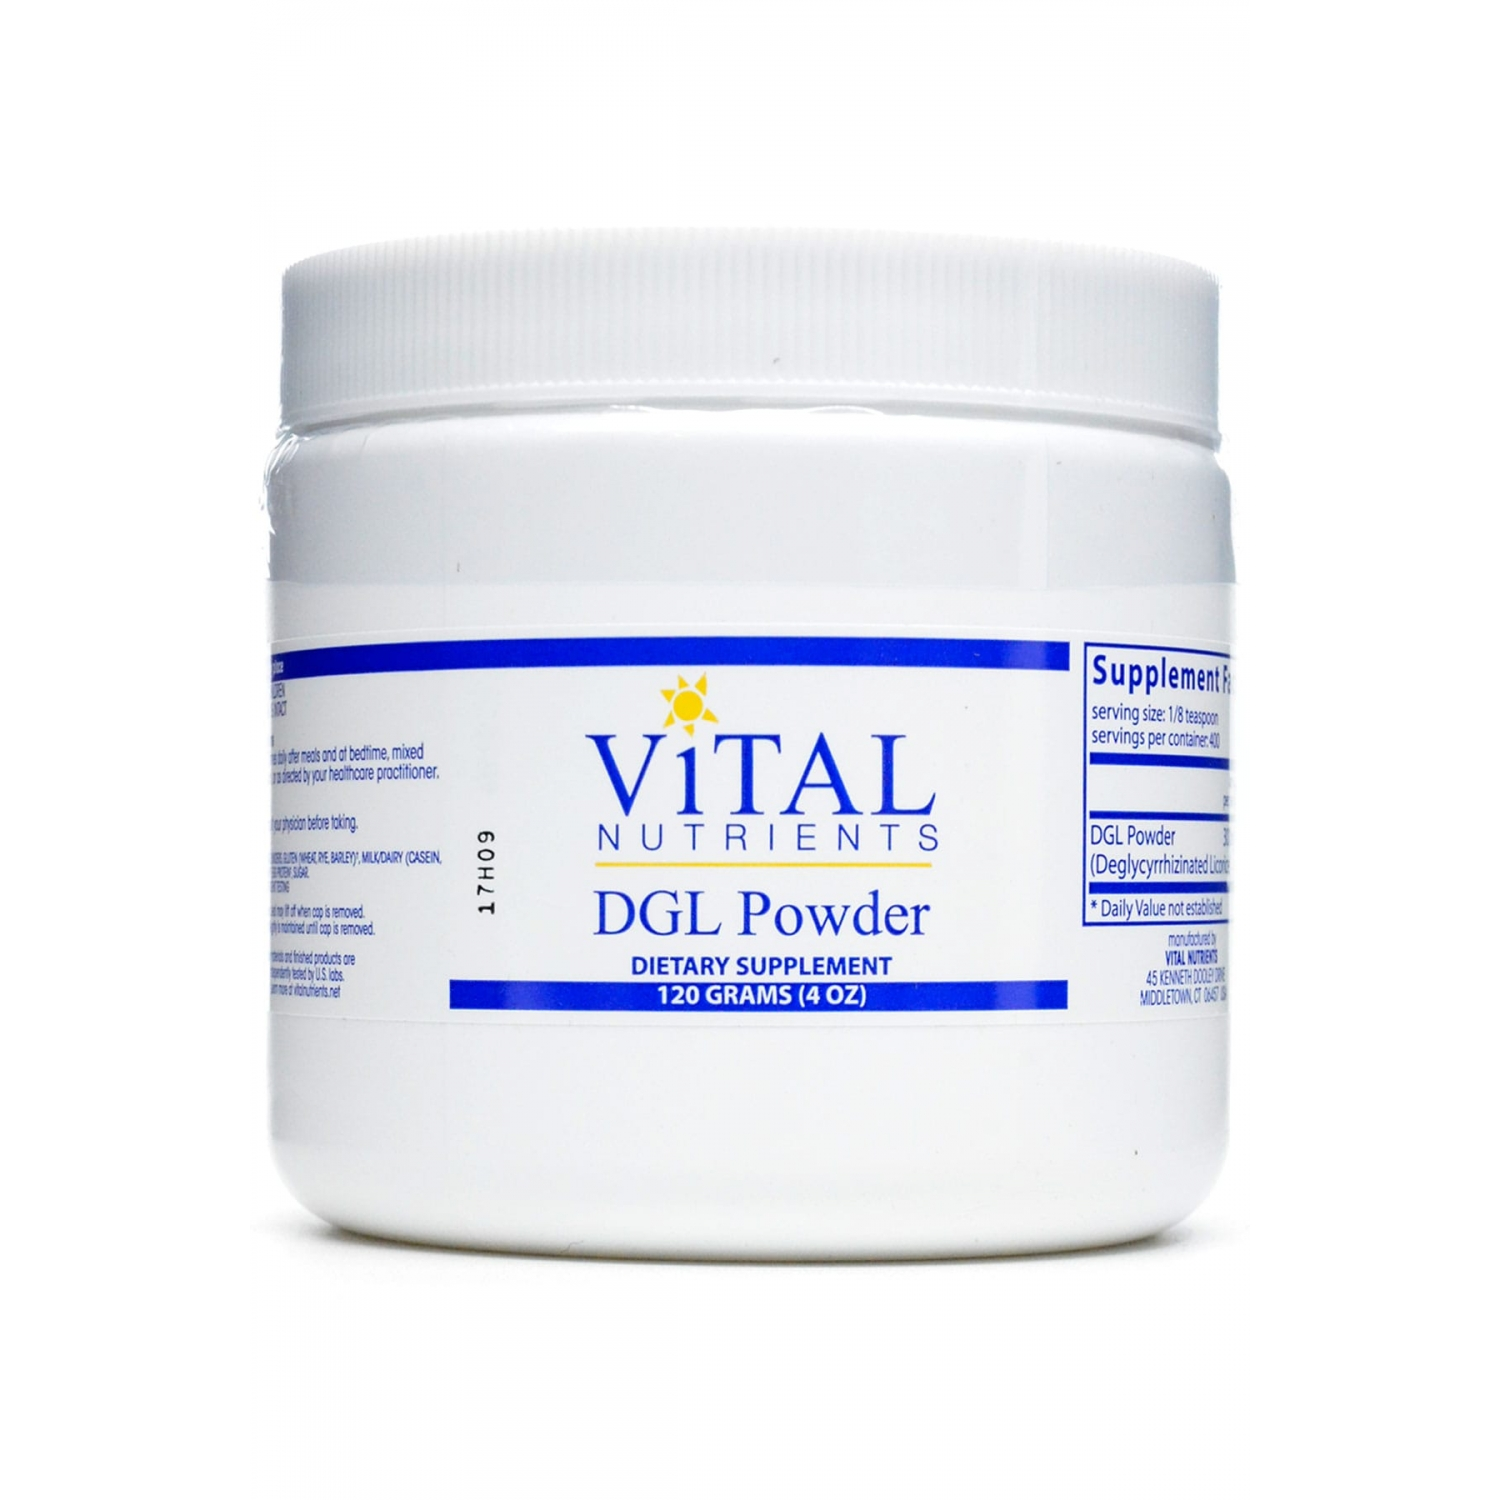 DGL Powder - A natural heartburn and acid reflux reliever that helps control the symptoms of GERD and gastritis.